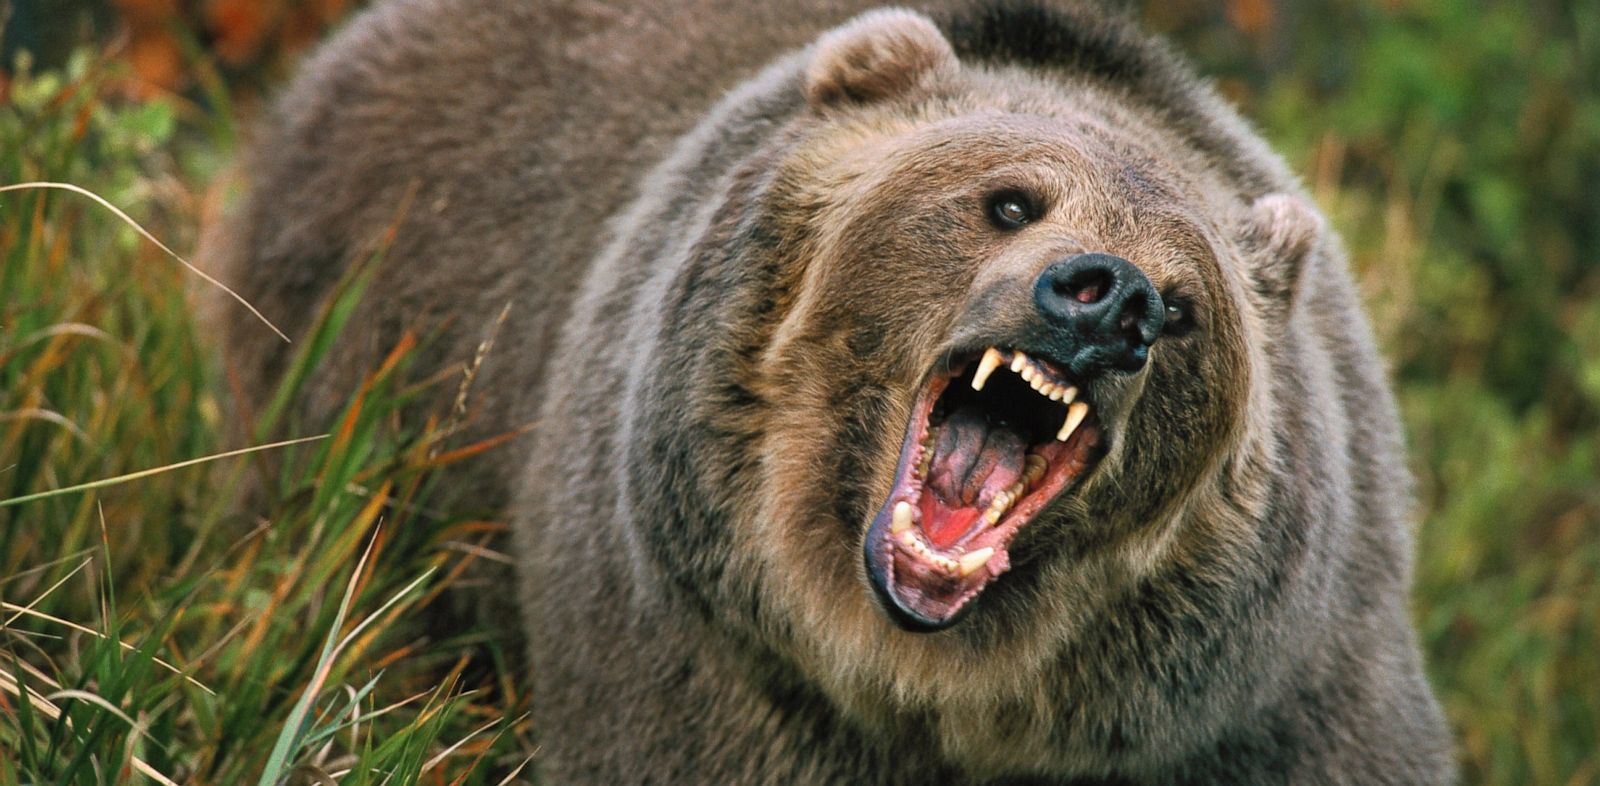 GTY_grizzly_bear_jt_130818_33x16_1600.jpg